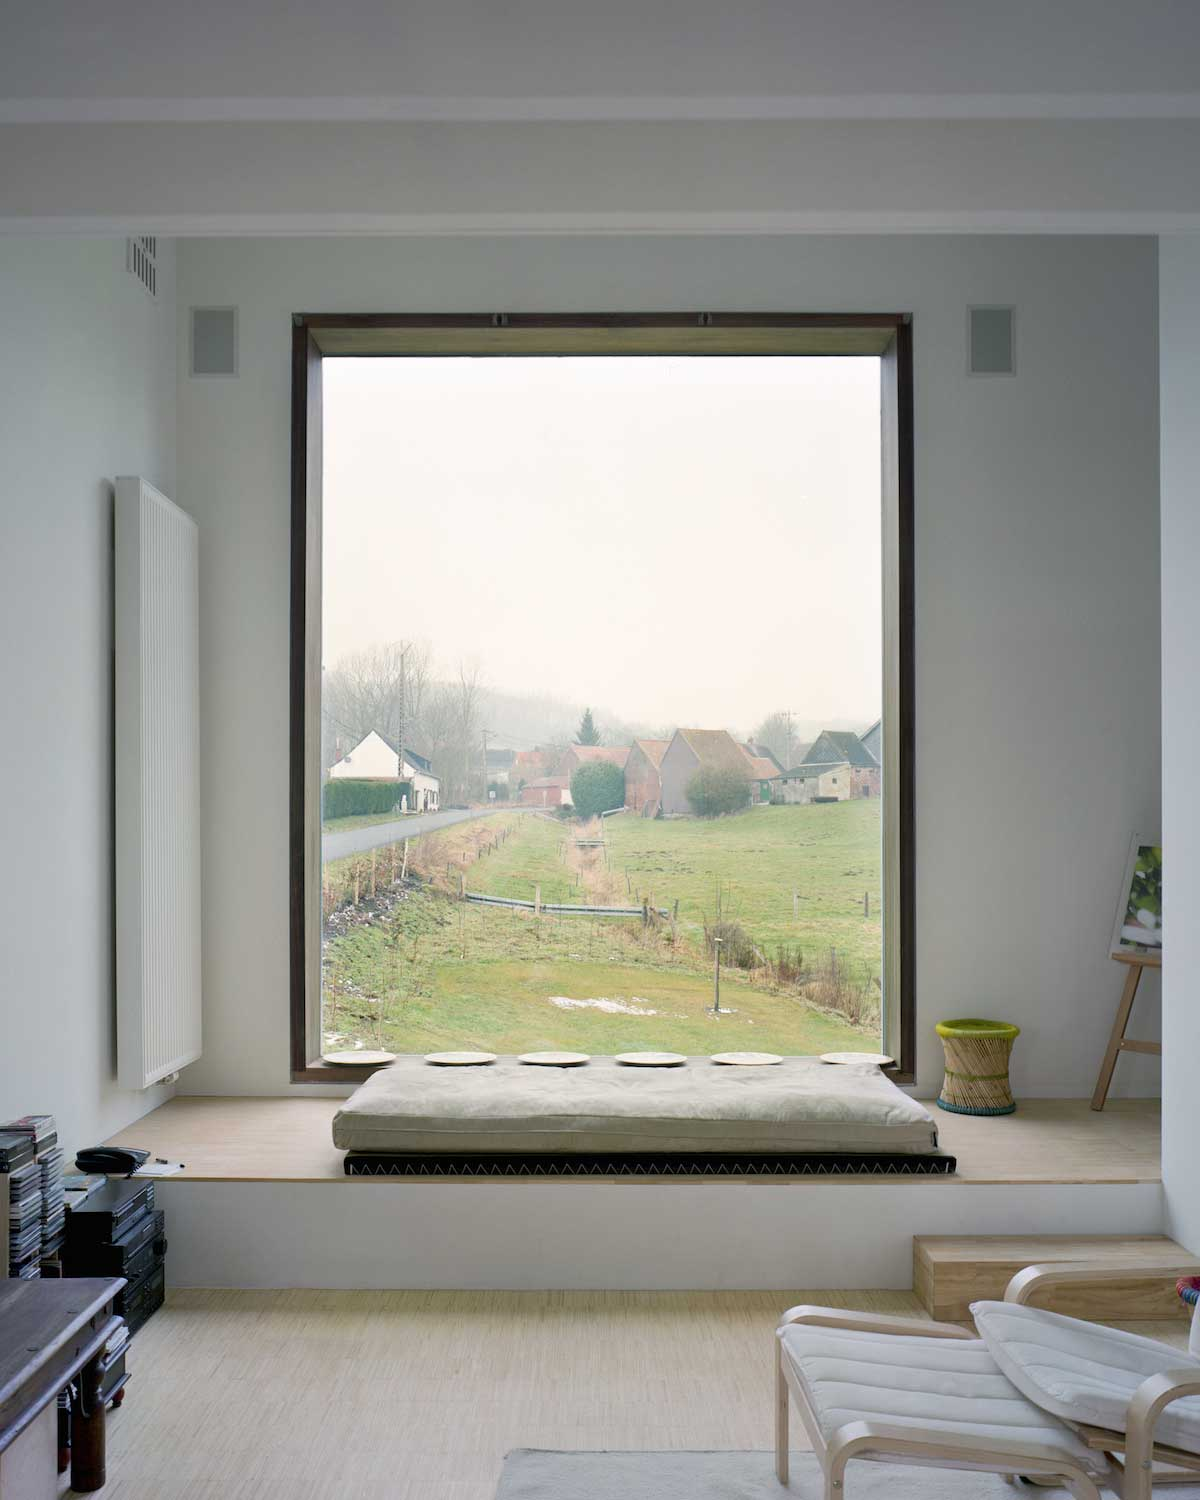 stories on design window seats curated by yellowtrace - family house by gwm architects  yellowtrace